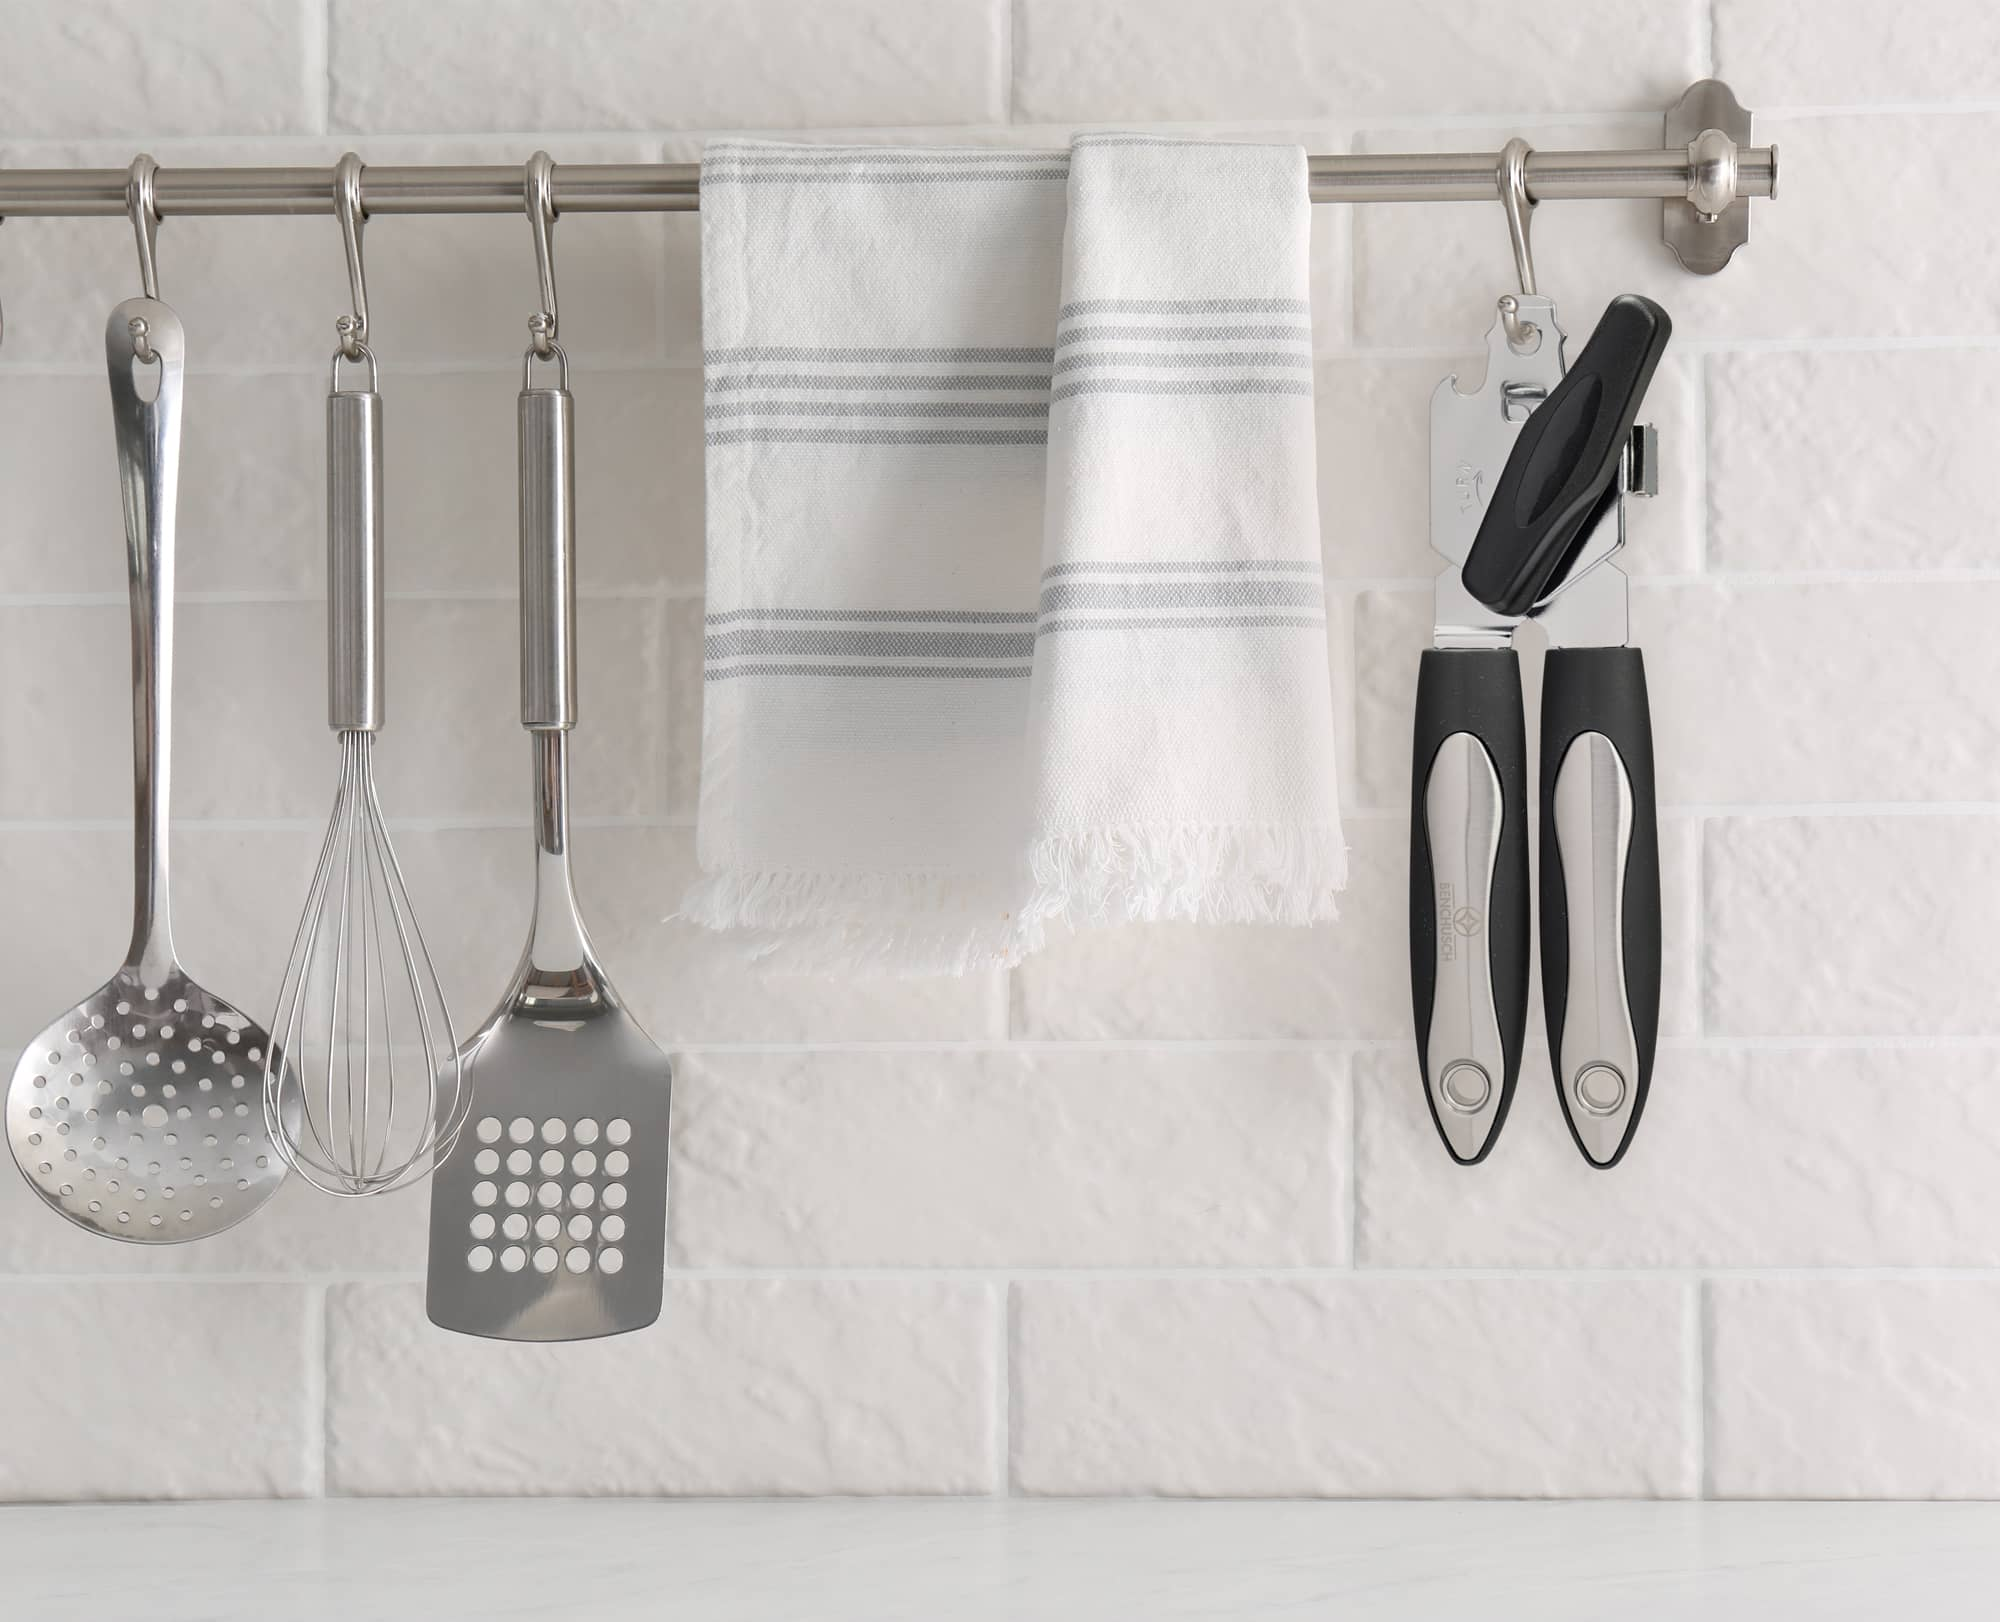 Hanging the Benchusch Magnet Classia Can Opener on the kitchen